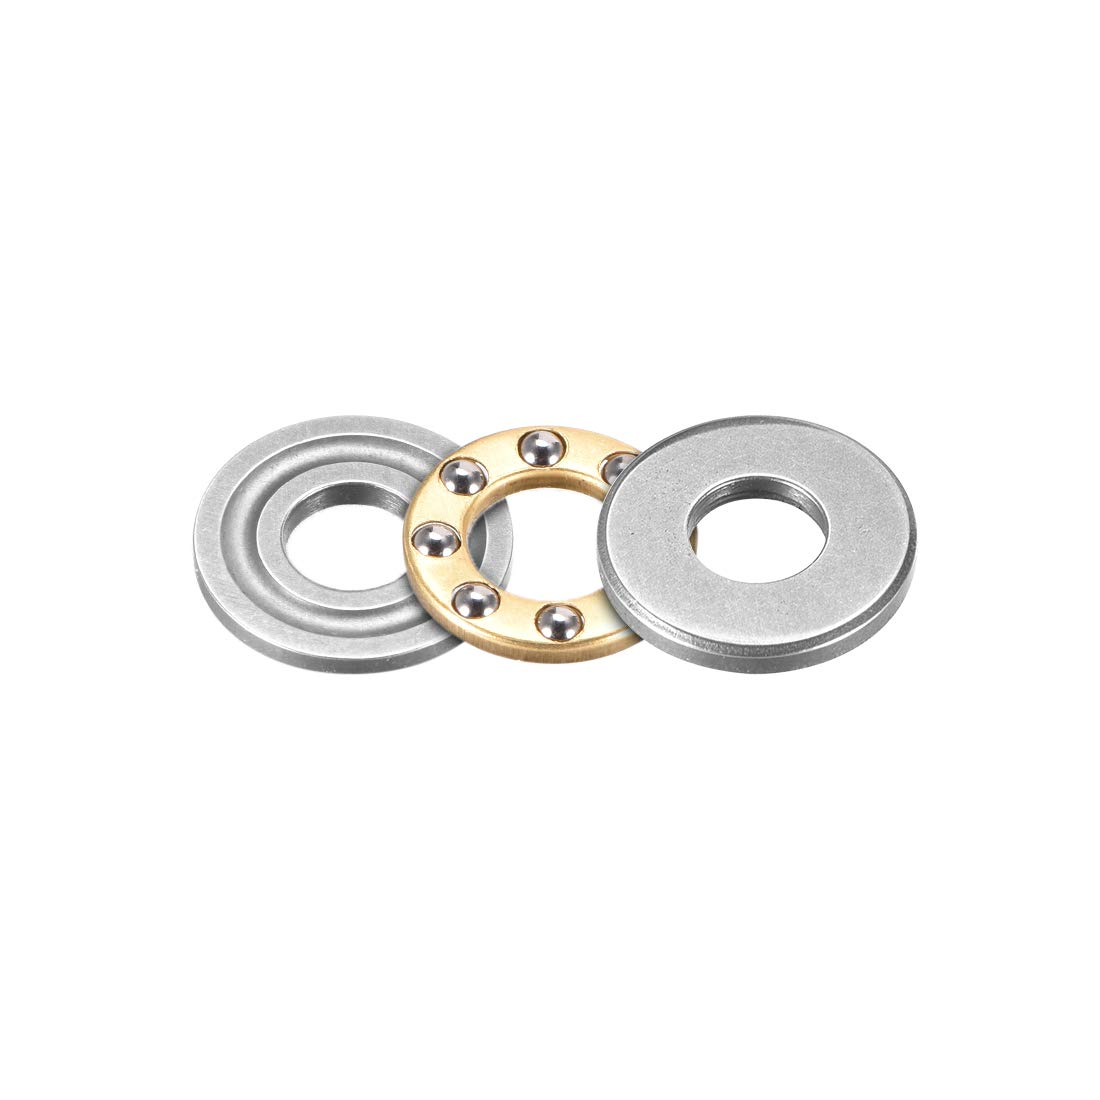 sourcing map 51102 Single Direction Thrust Ball Bearings 15mm x 28mm x 9mm Chrome Steel Pack of 2